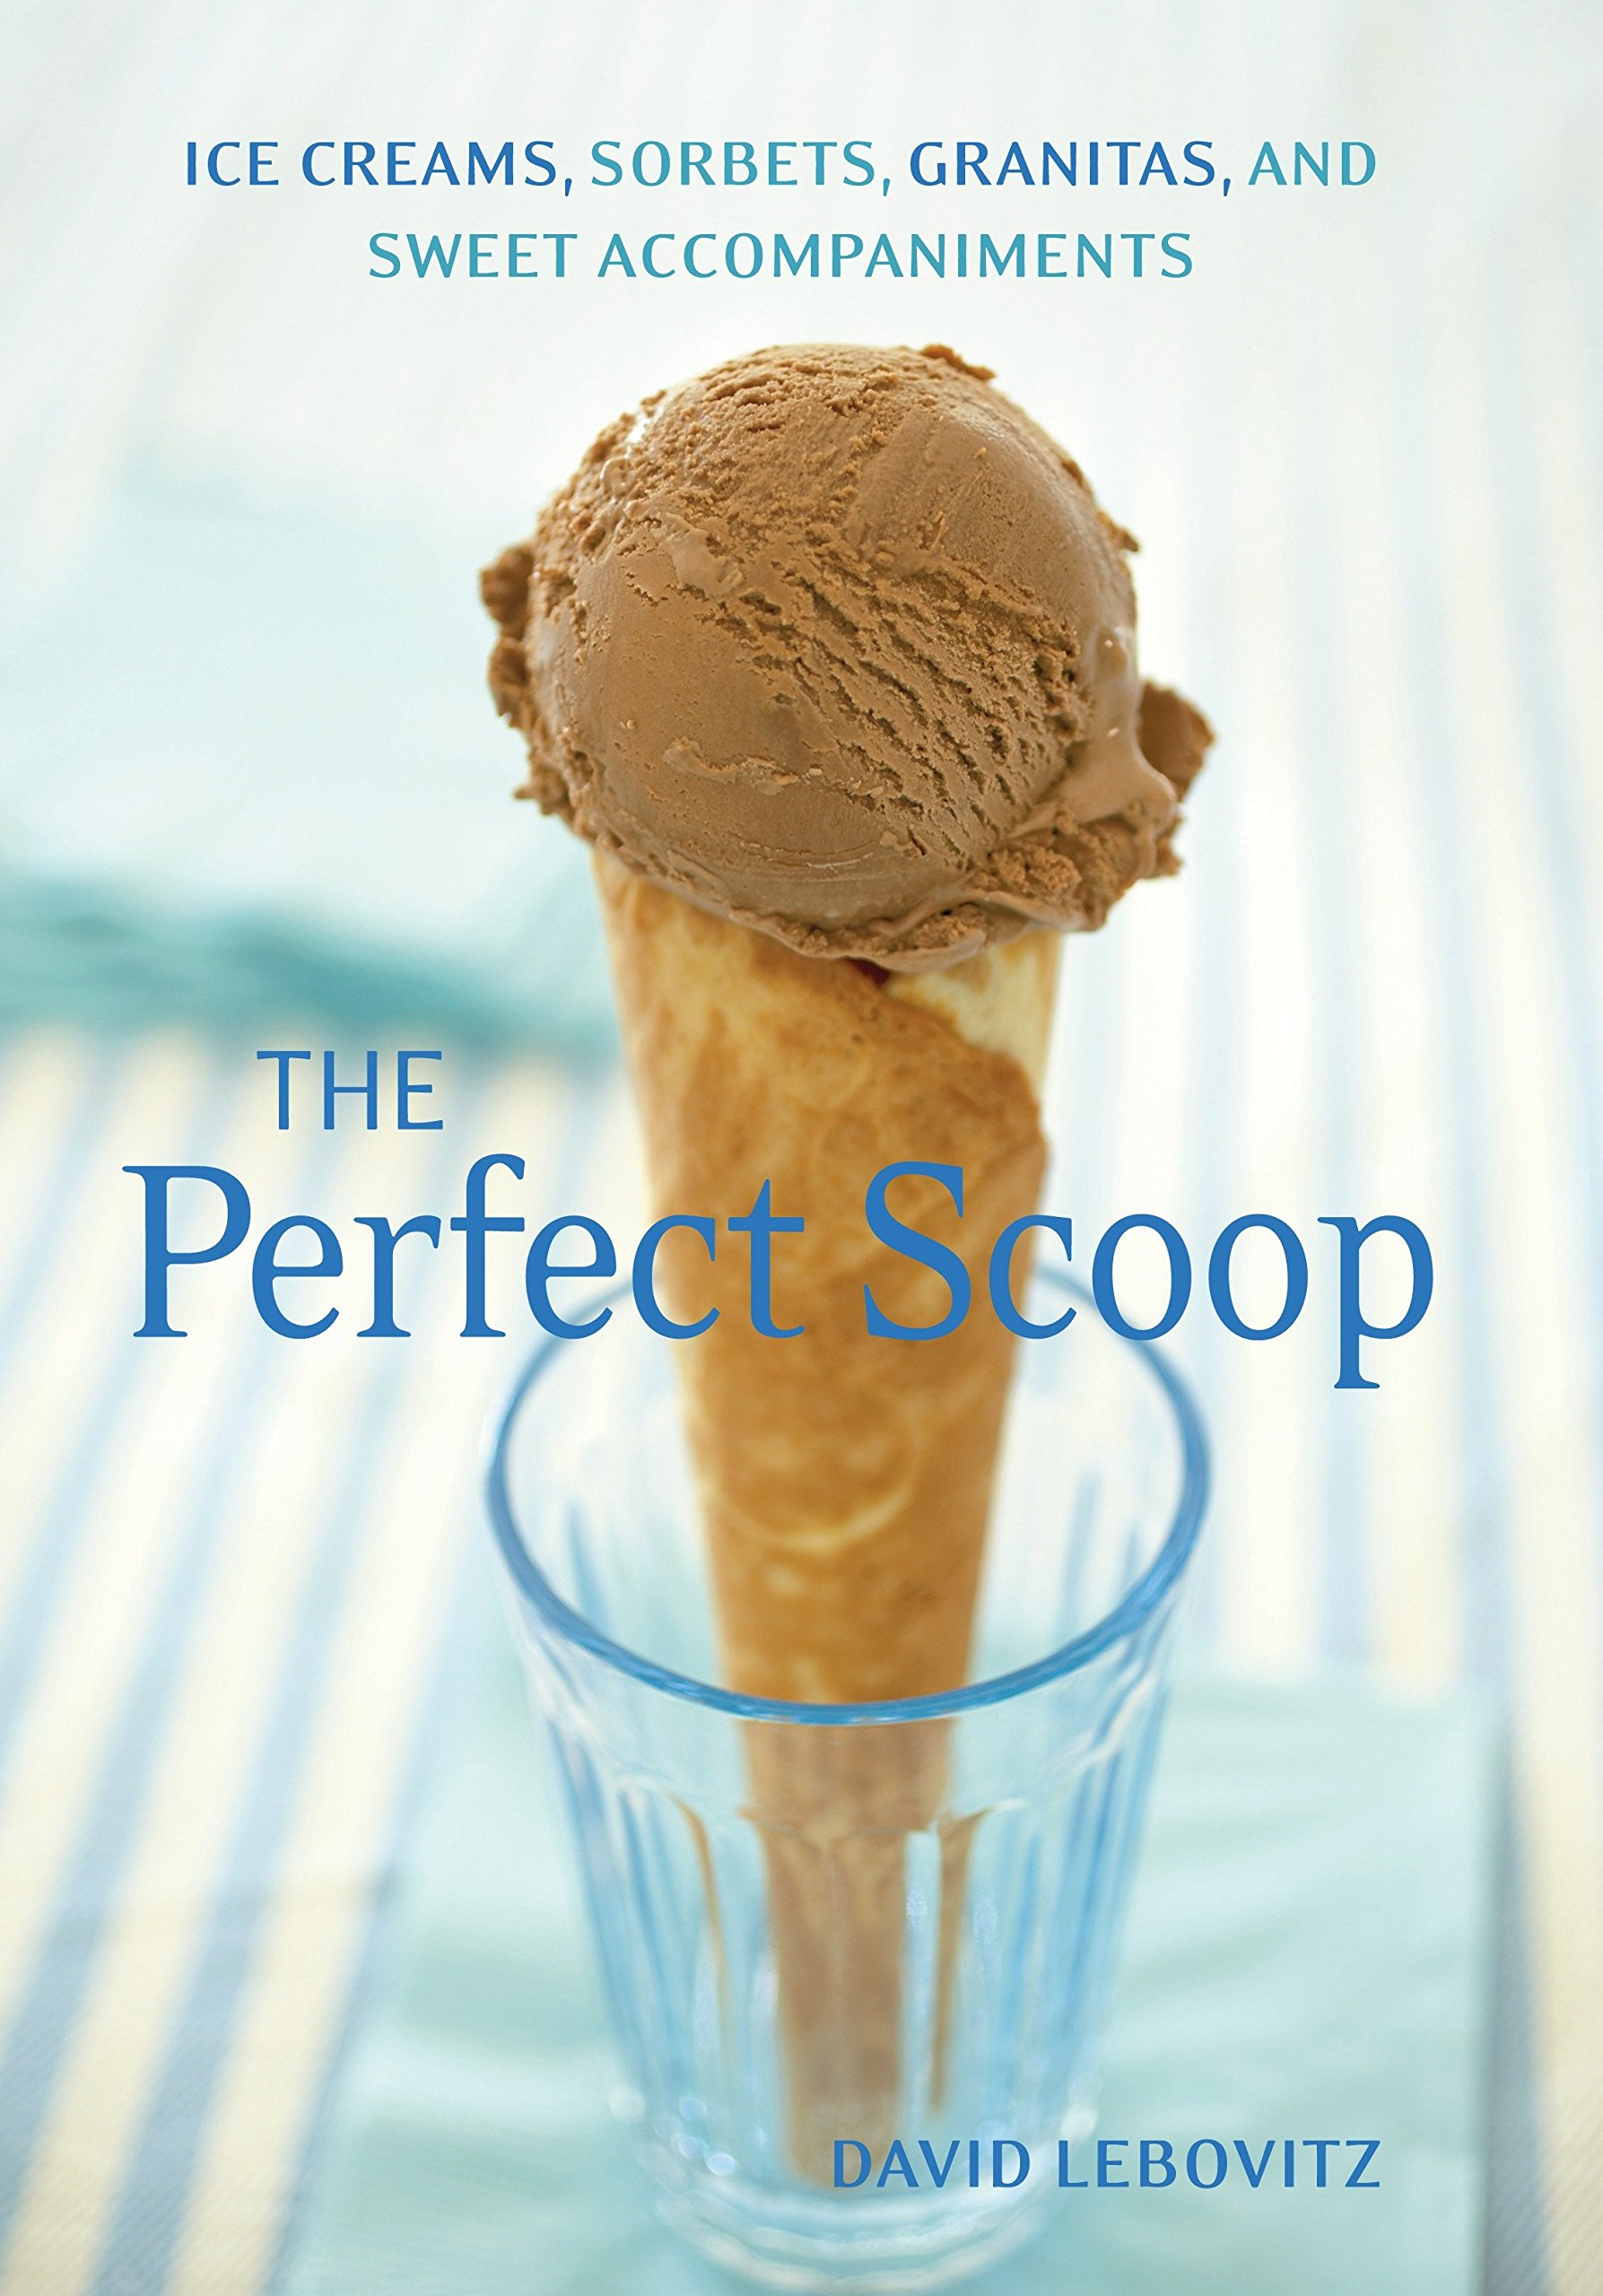 Read Online The Perfect Scoop: Ice Creams, Sorbets, Granitas, and Sweet Accompaniments PDF